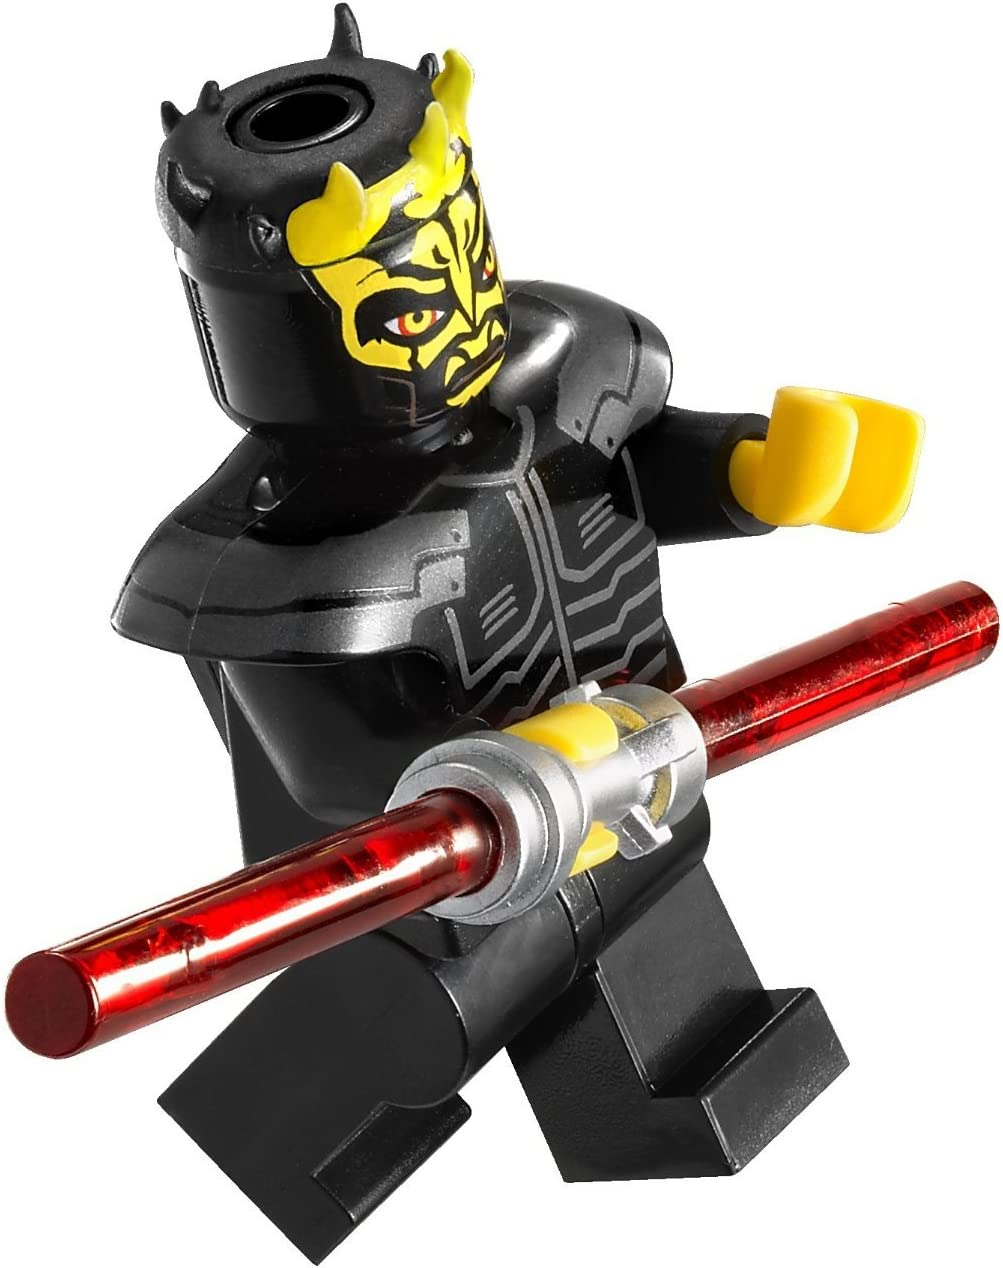 LEGO Accessories: Savage Opress with Dual Red Lightsaber